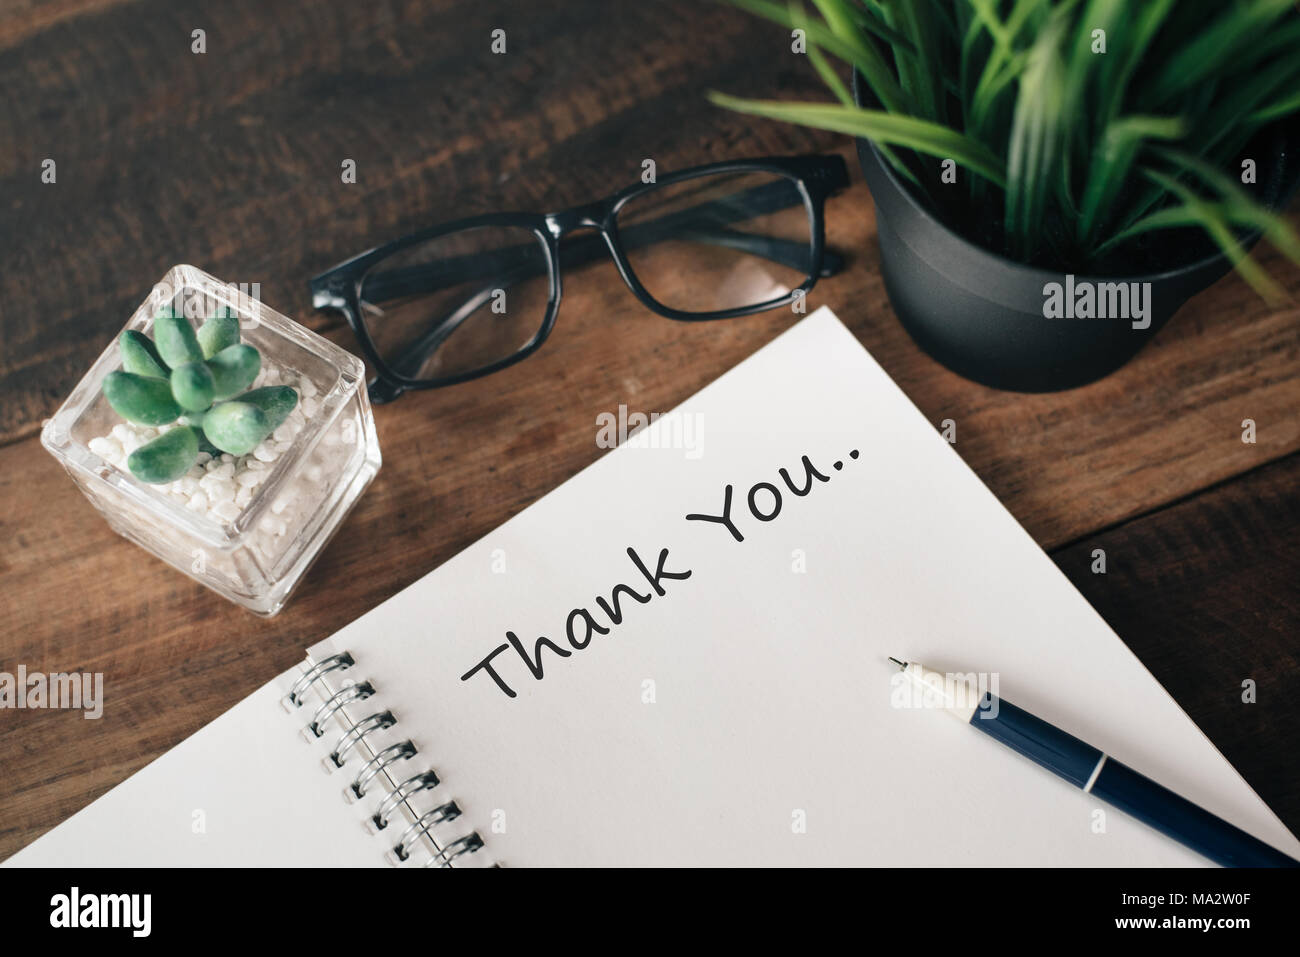 eyeglass, green plant and notebook with word THANK YOU.appreciation concept - Stock Image